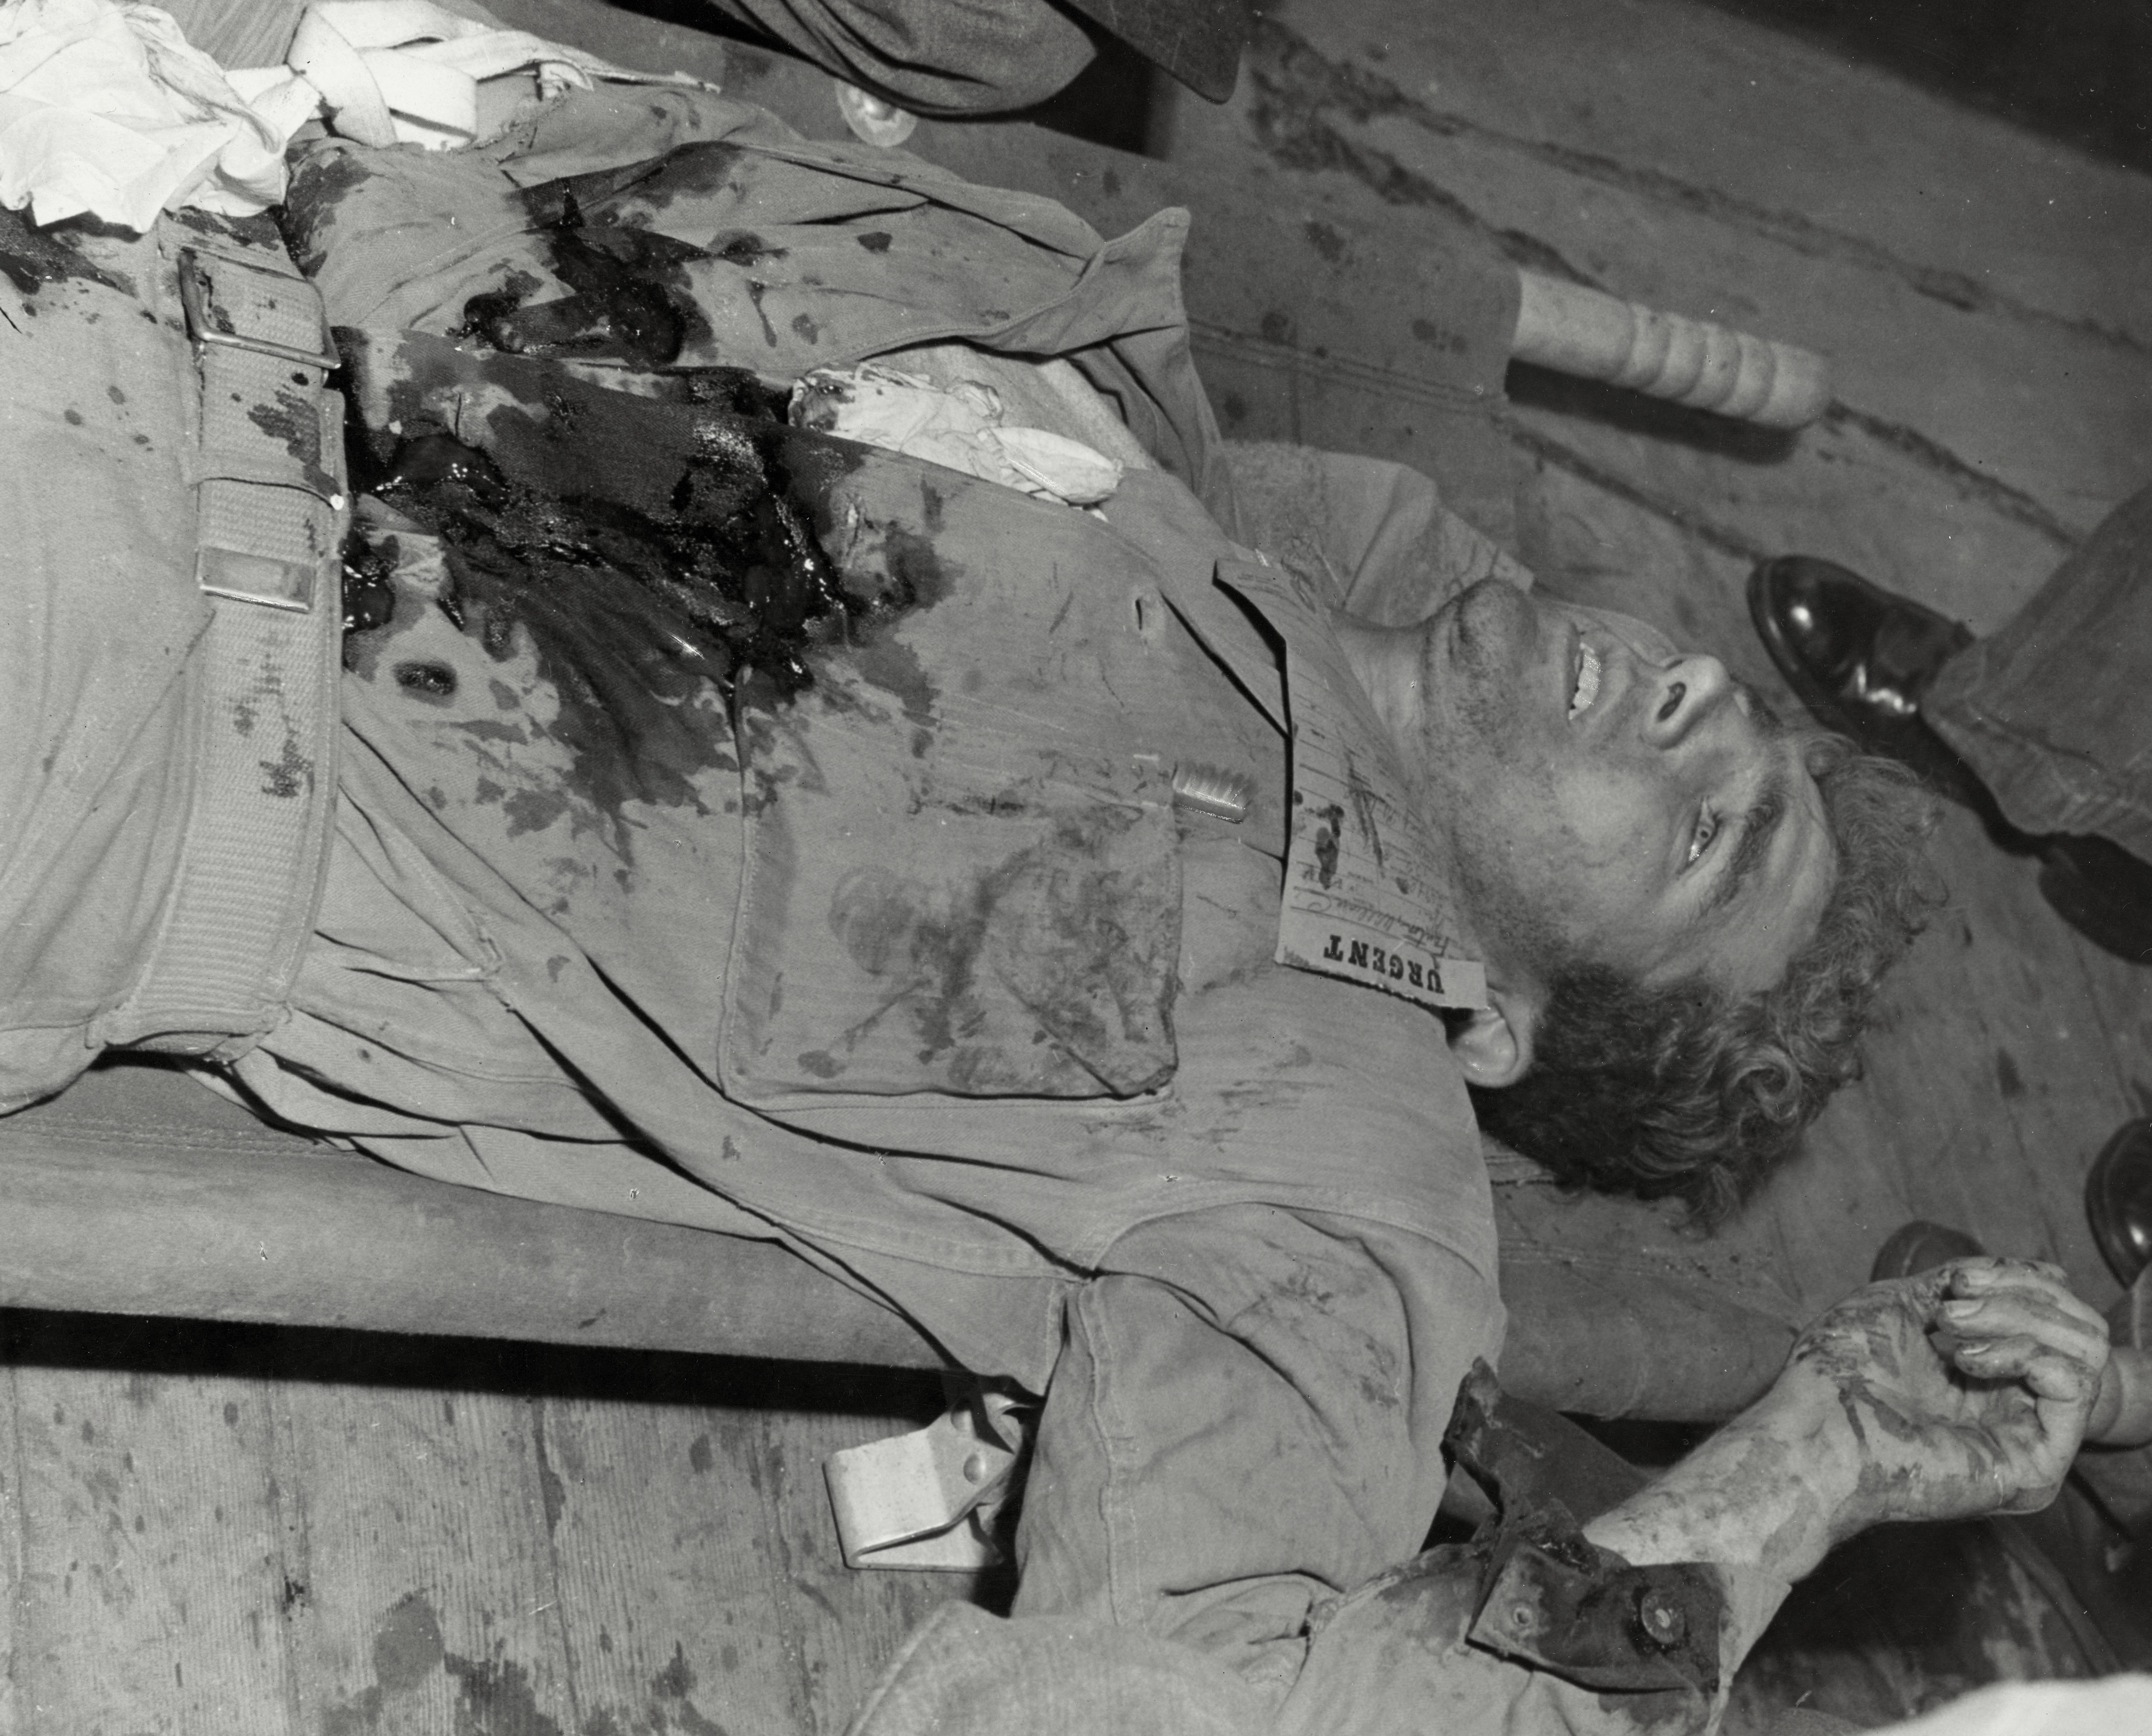 dickey-chapelle-photograph-dying-marine-copy